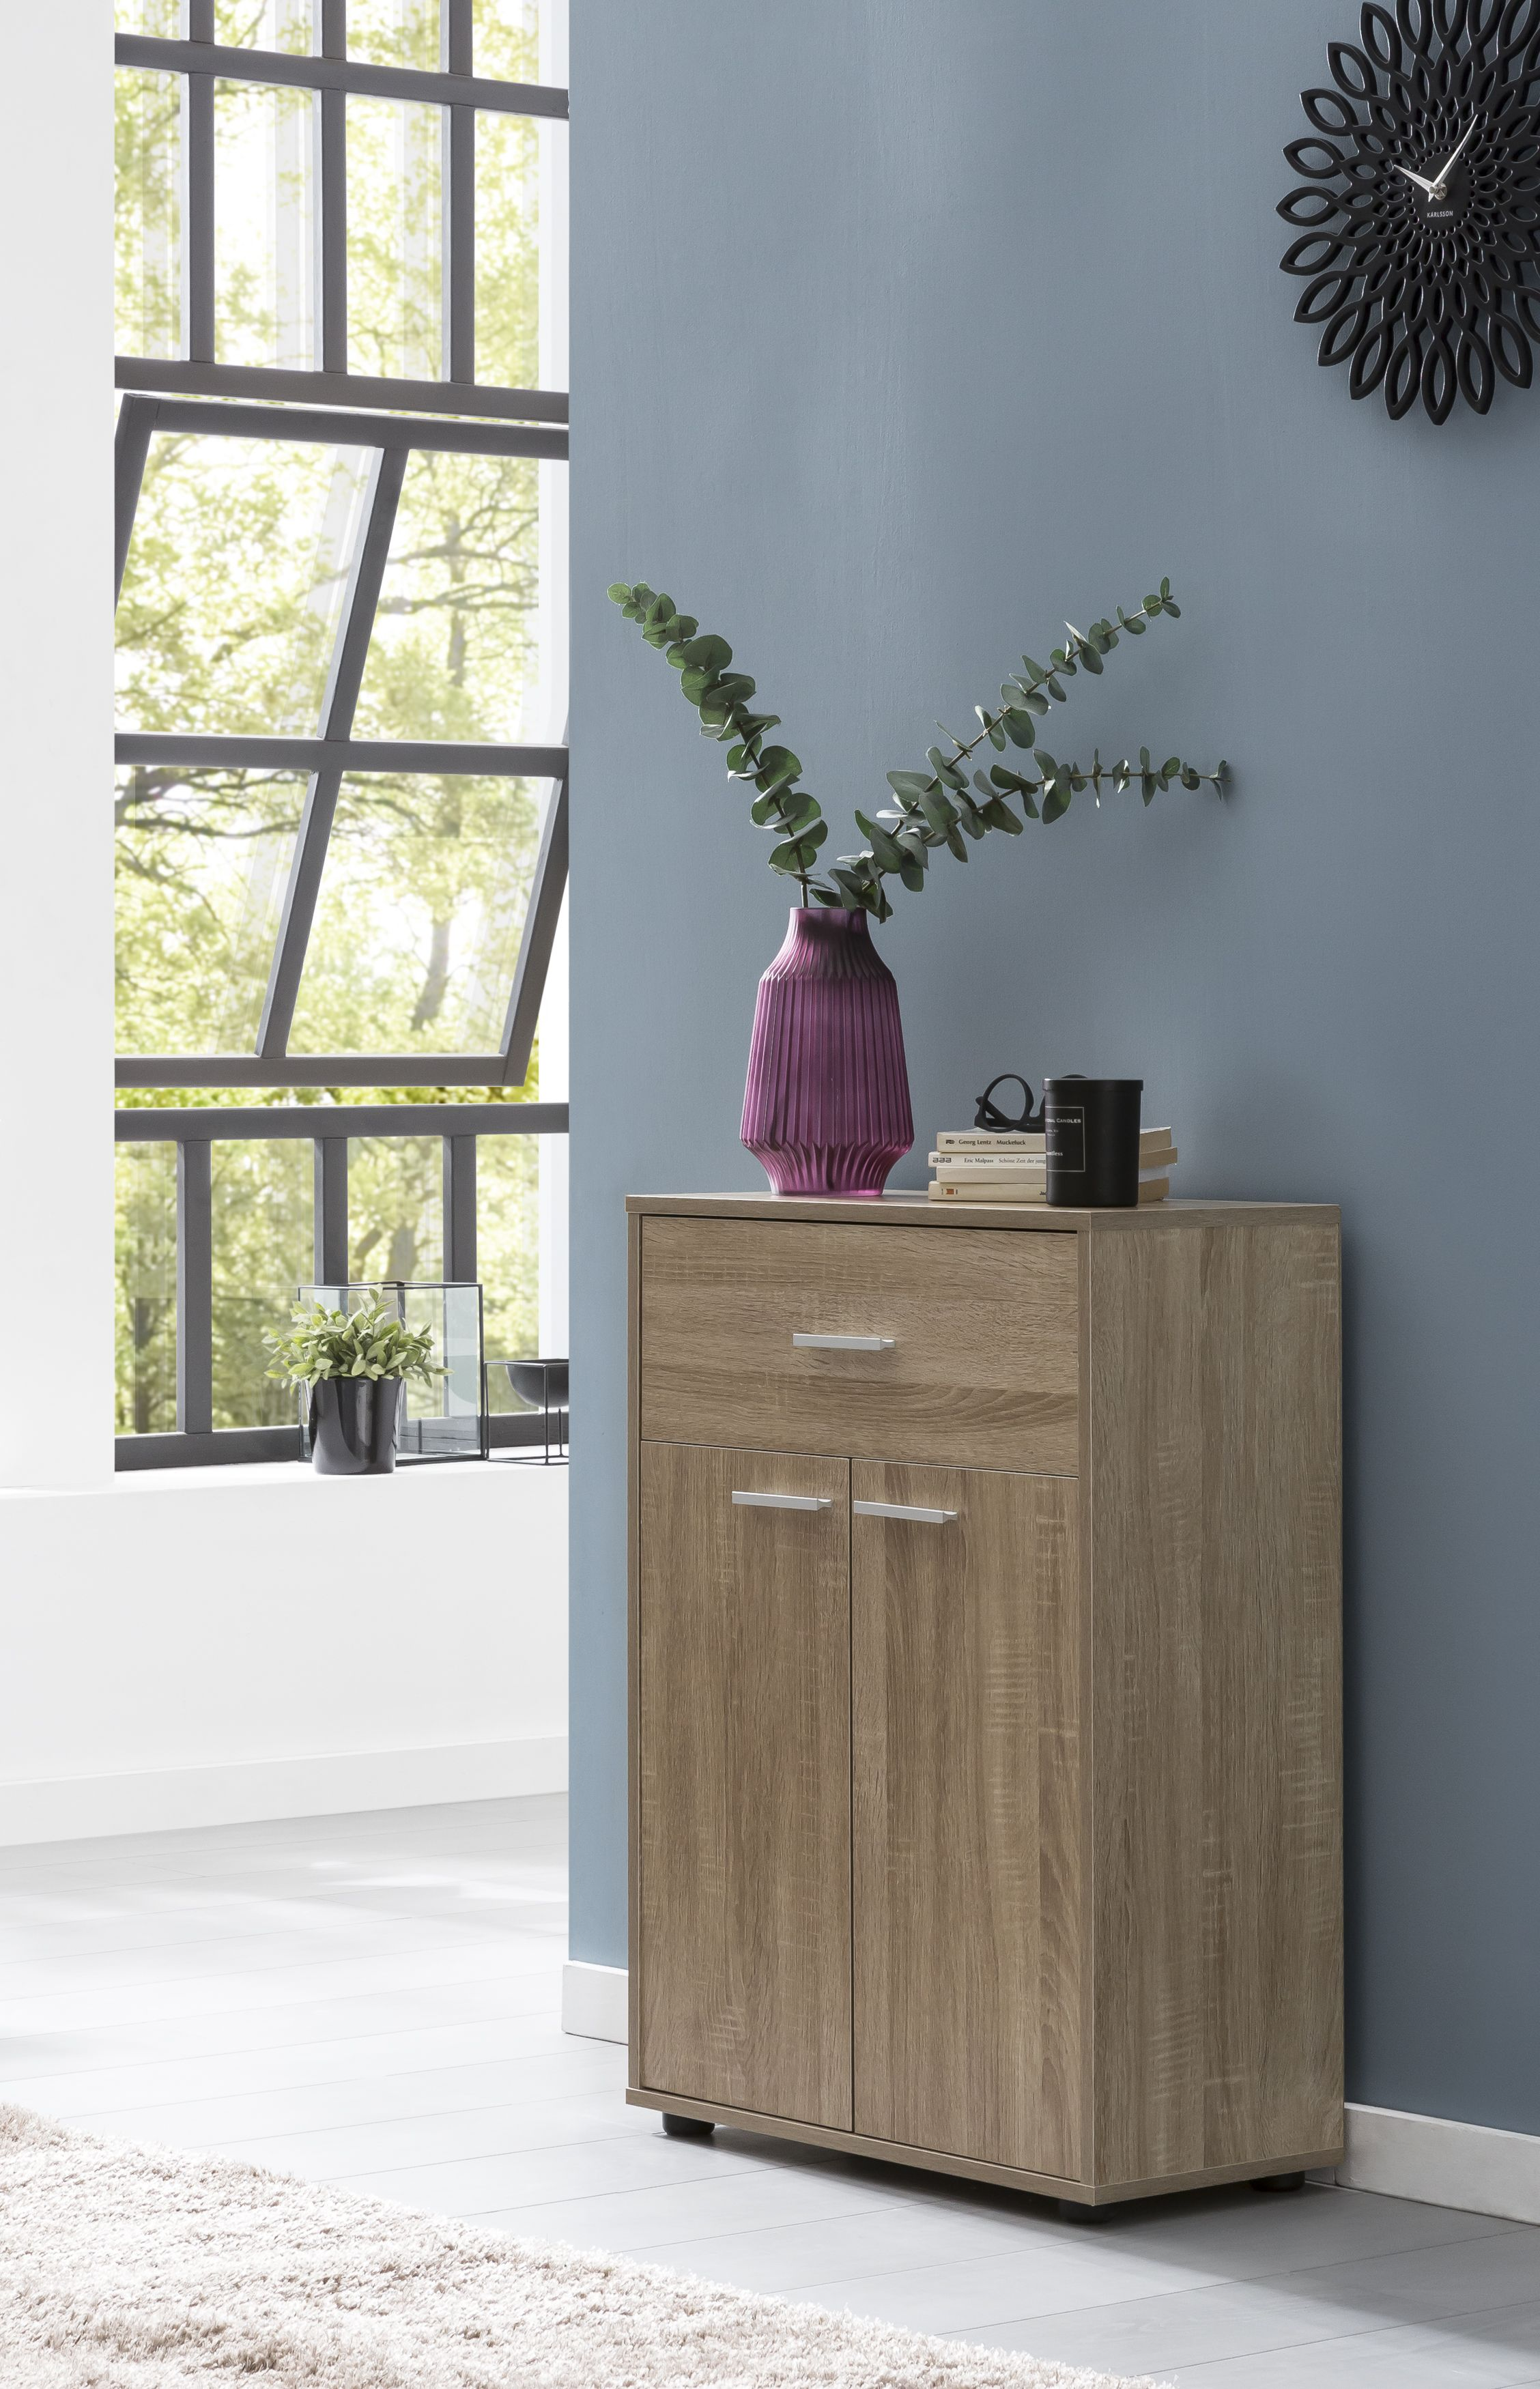 Wohnling Sideboard Sonoma Eiche Wl5 883 Commode